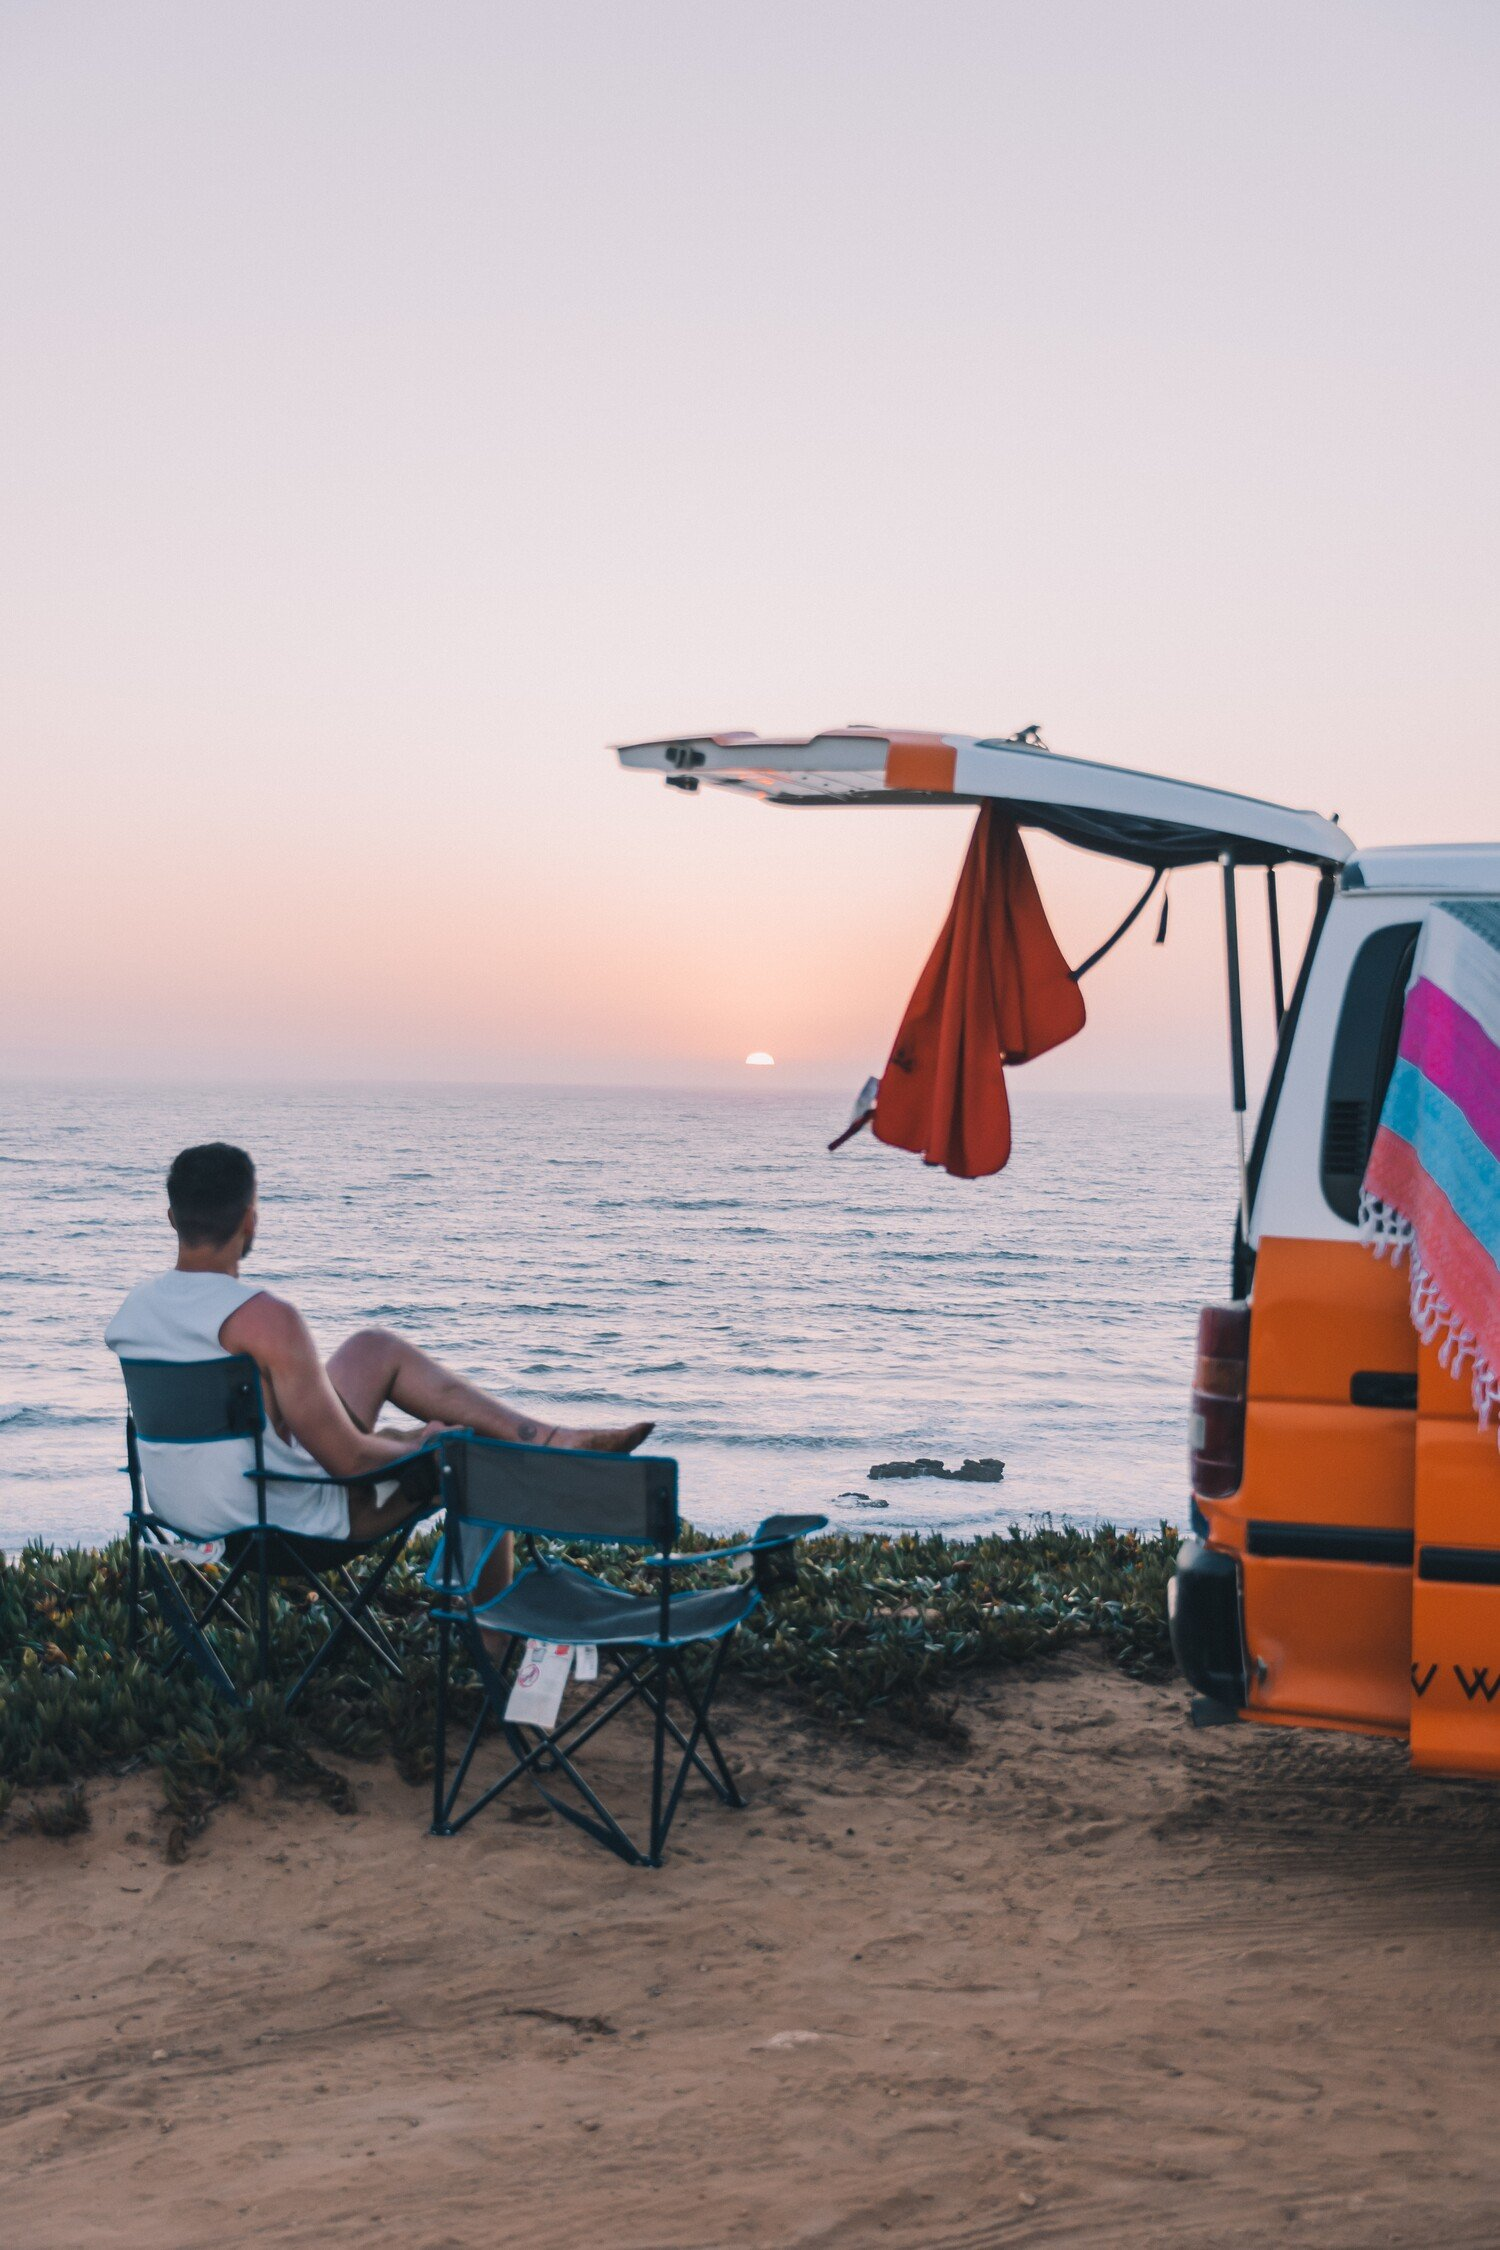 Taking in the sunset during our van trip road trip of Portugal